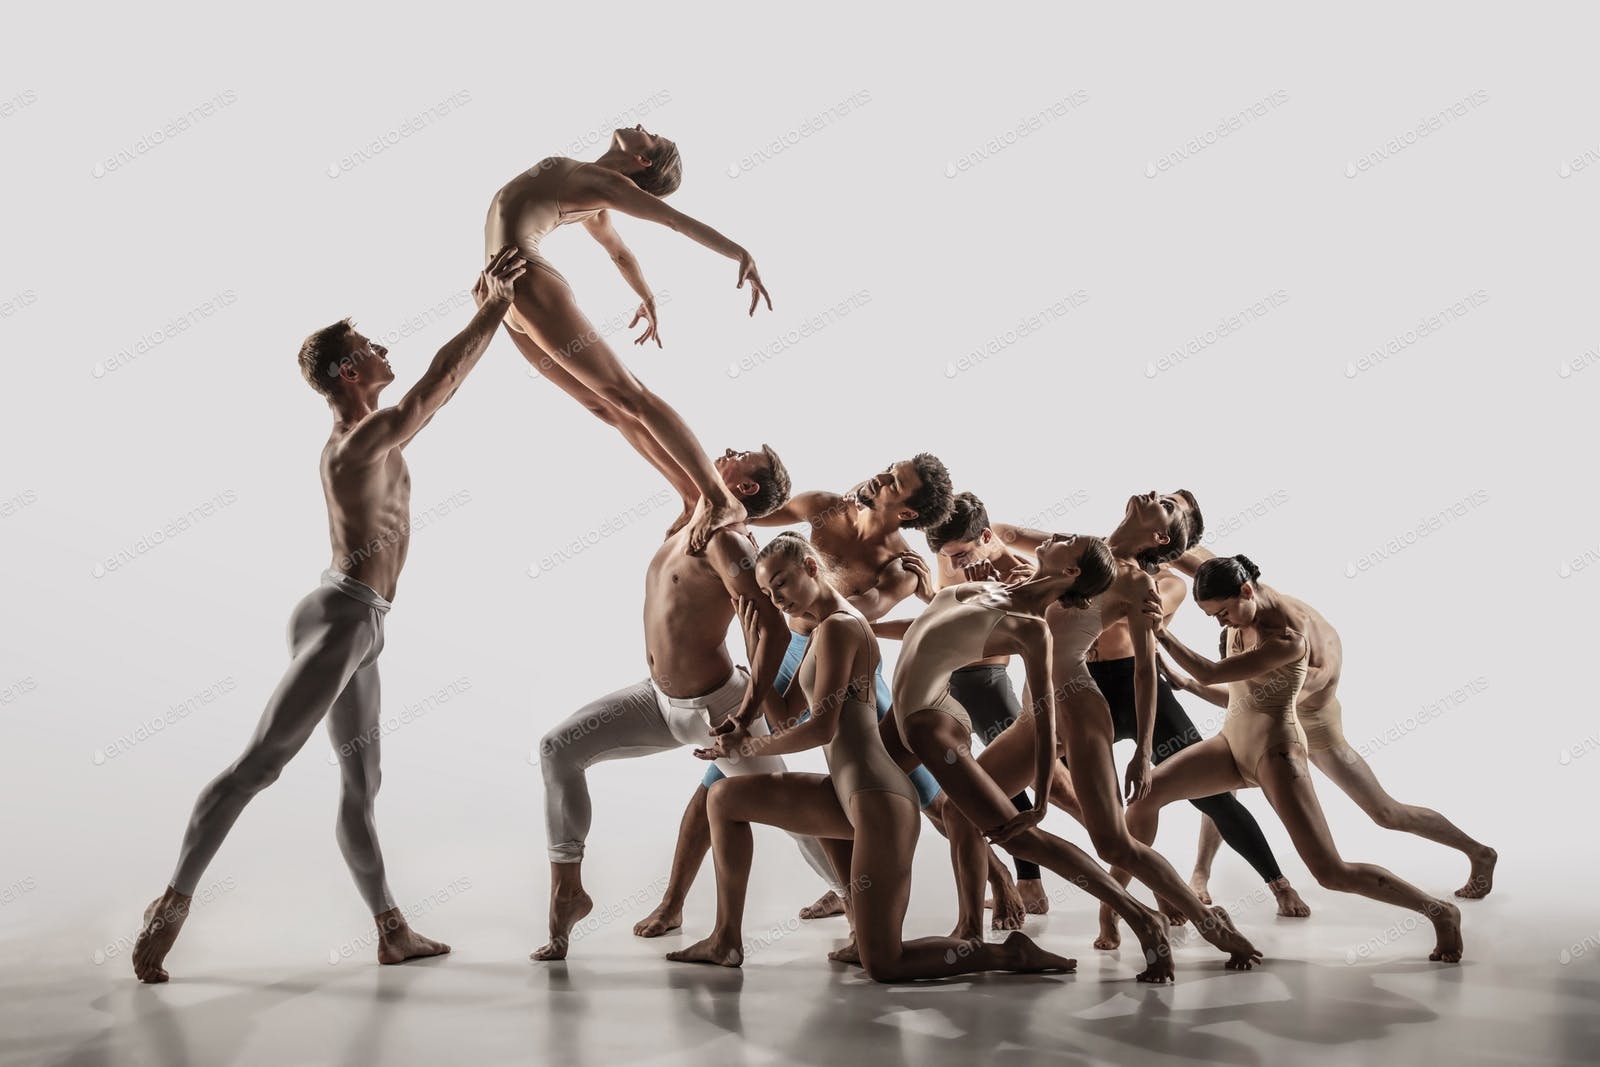 The group of modern ballet dancers. Contemporary art ballet. Young flexible  athletic men and women photo by master1305 on Envato Elements